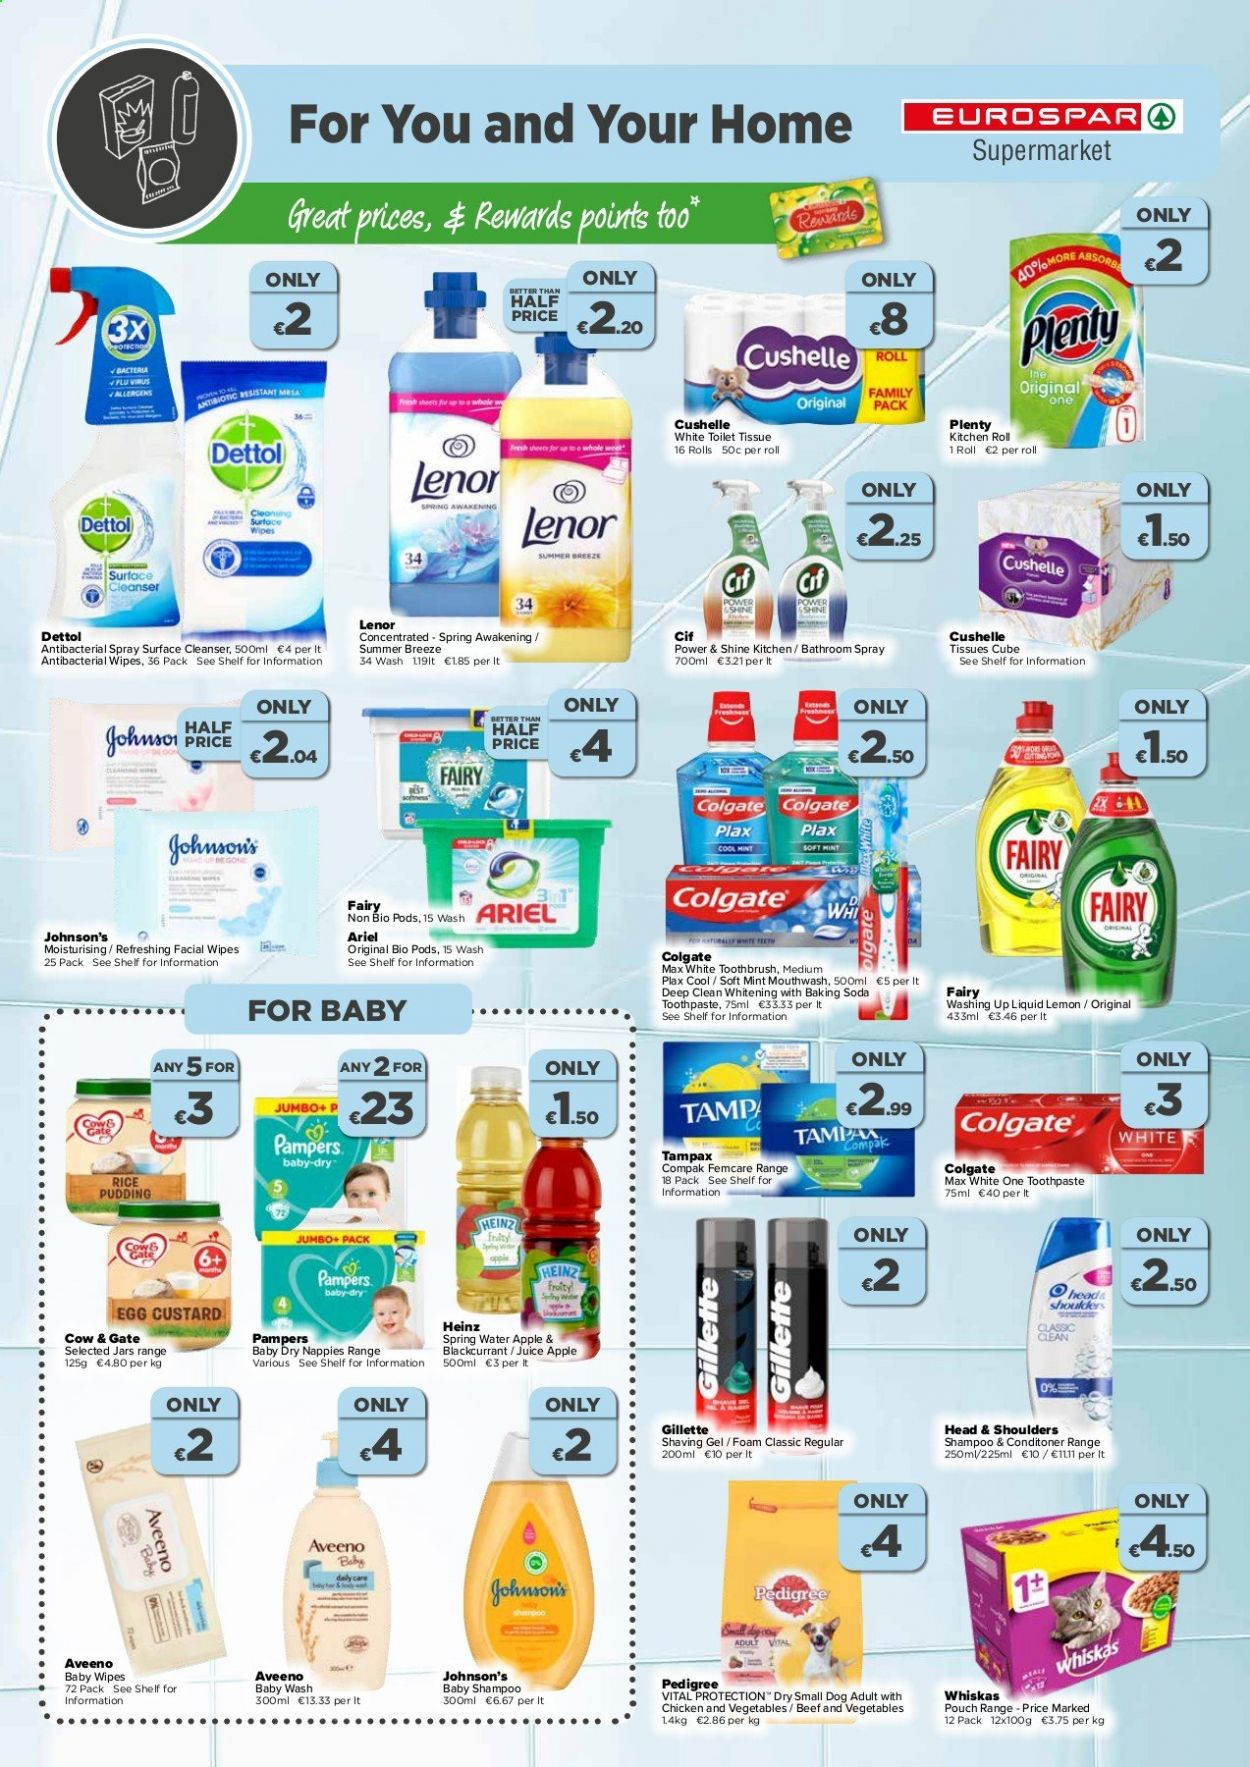 EUROSPAR offer  - 9.7.2020 - 29.7.2020 - Sales products - apple, aveeno, baking soda, bathroom, beef meat, cleanser, custard, colgate, foam, gillette, mint, rice, shampoo, shelf, spray, spring water, surface, tampax, toilet, toothbrush, wipes, head & shoulders, heinz, jar, kitchen, pudding, chicken, pampers, soda, juice, vegetable, toothpaste, baby wipes, whiskas, dettol, ariel, family pack, antibacterial spray, cool. Page 6.